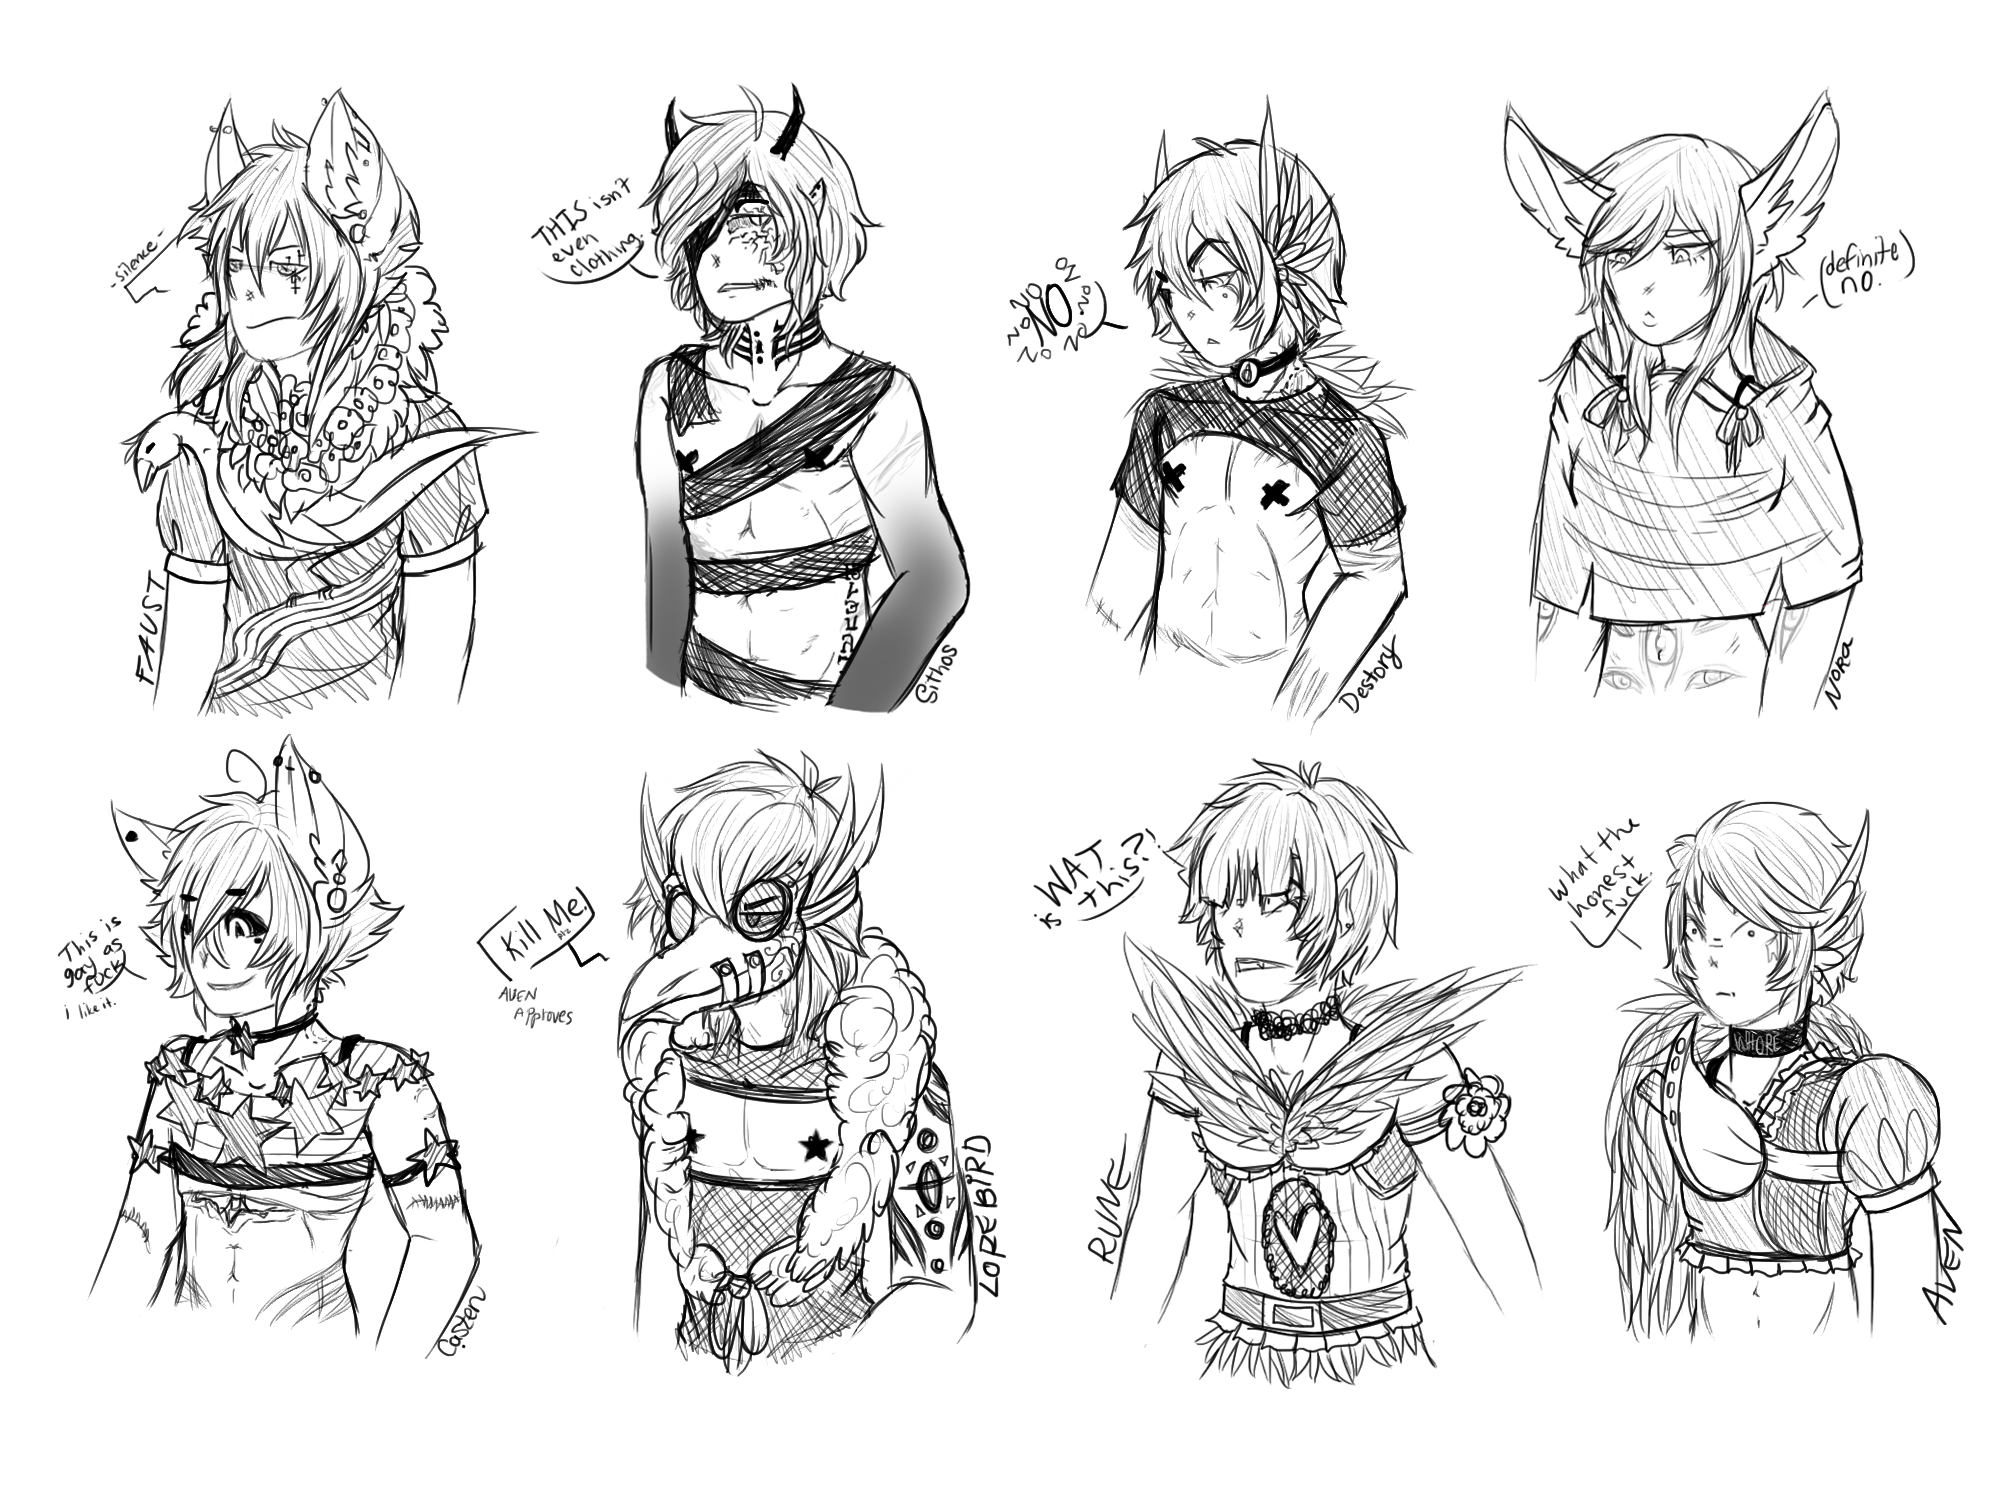 [Doodle] Nonsense Fashion by Gothamed